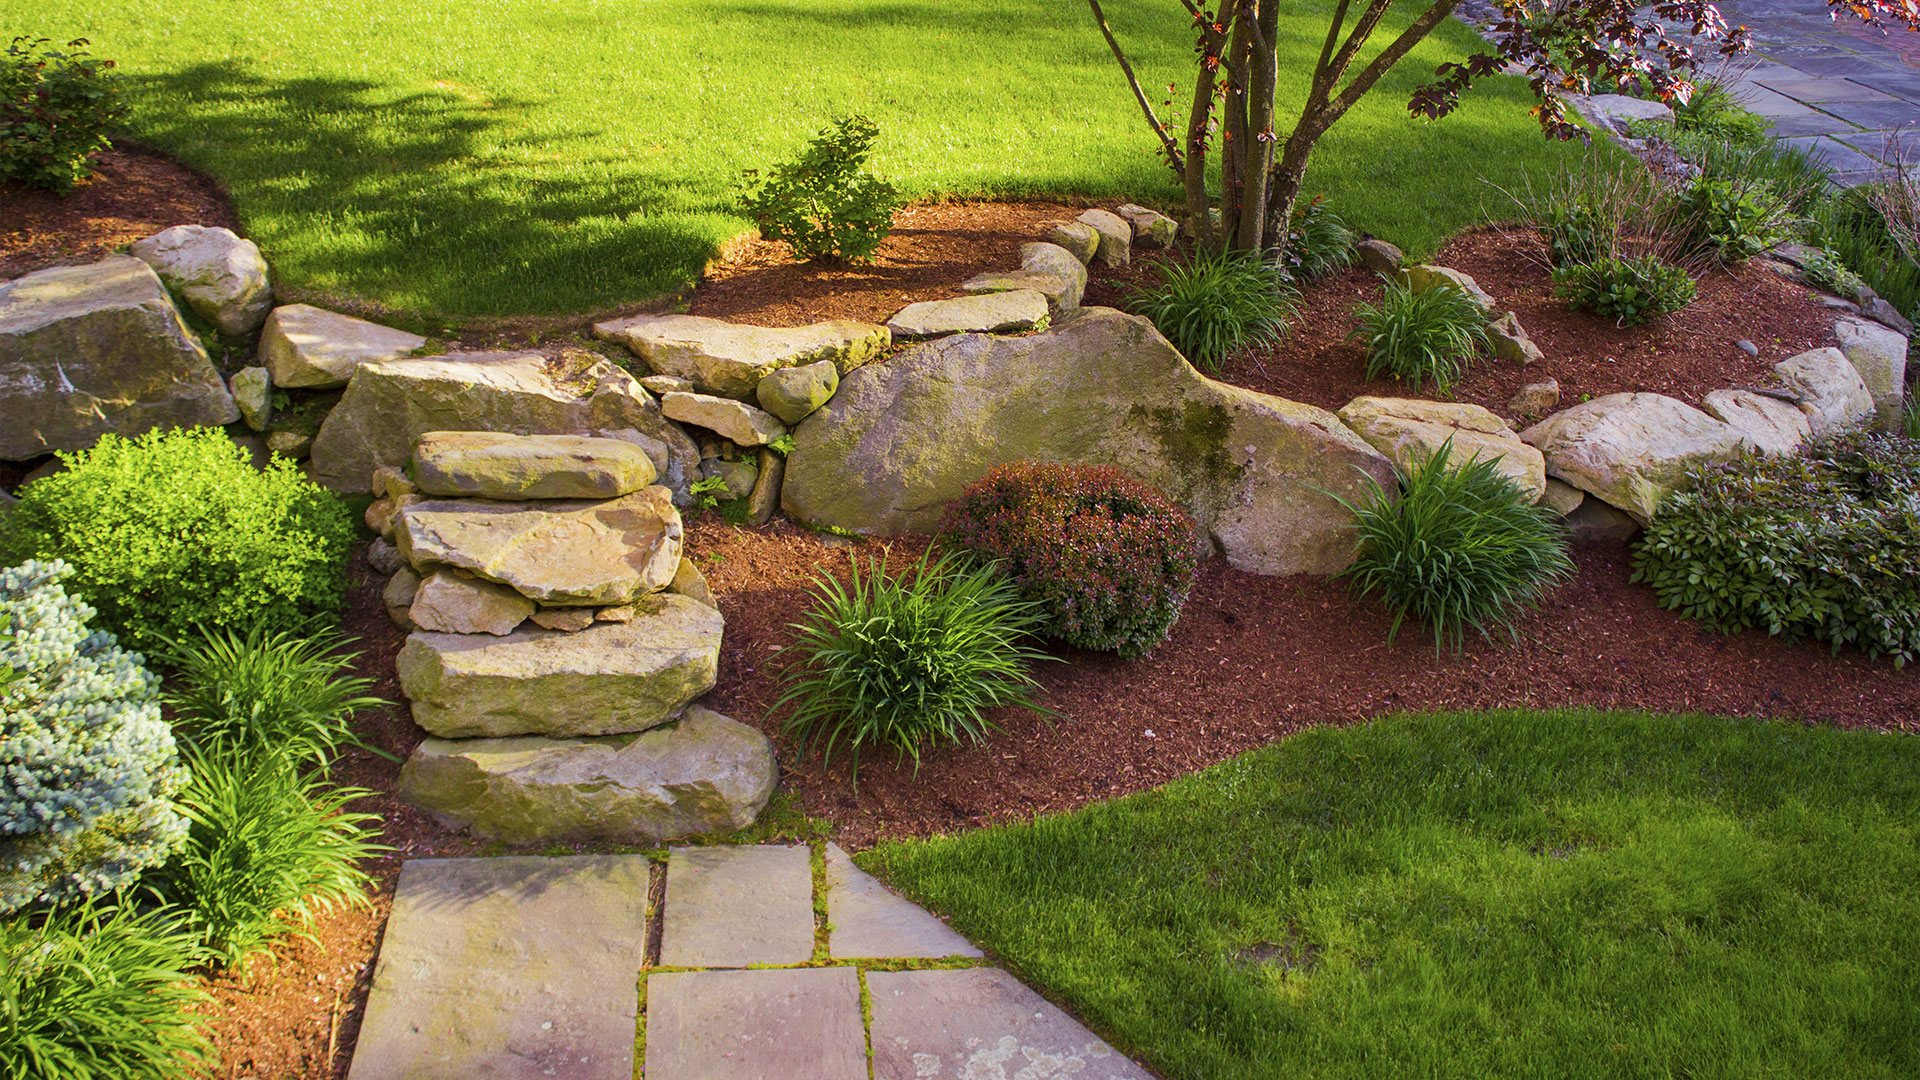 Home rockville landscaping weed control and lawn care for Design and landscape